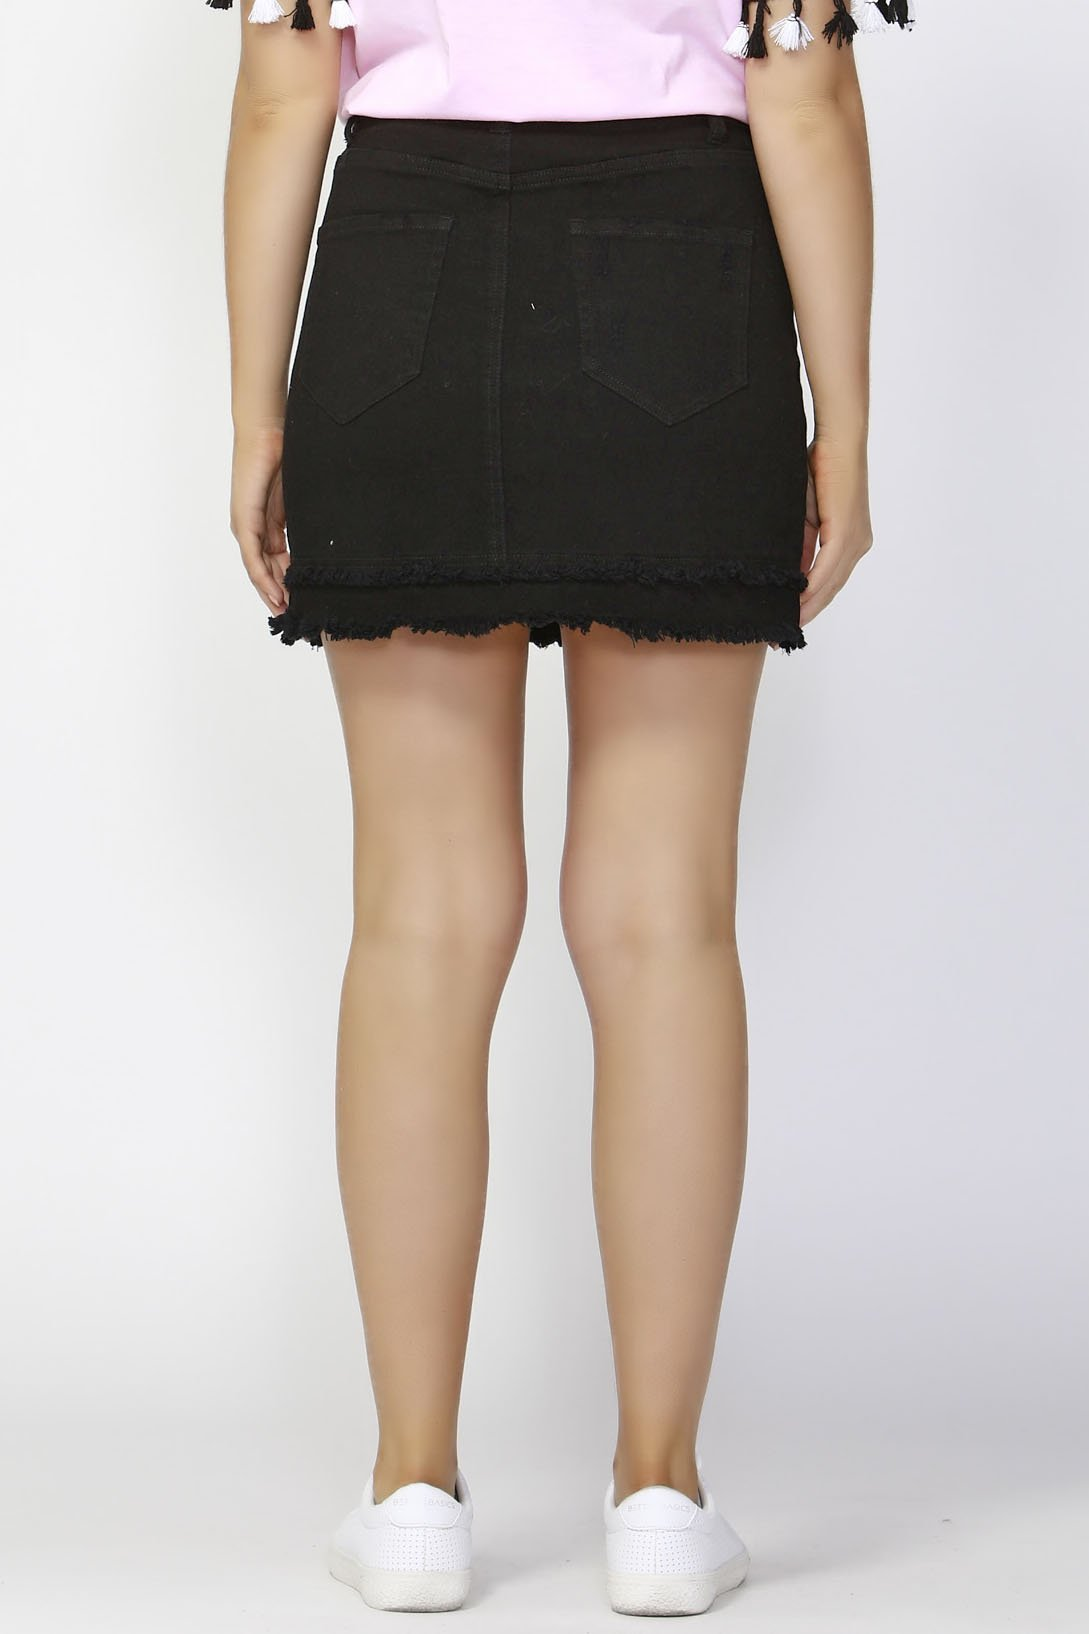 Sass Jetsetter Double Hem skirt in Black - Hey Sara